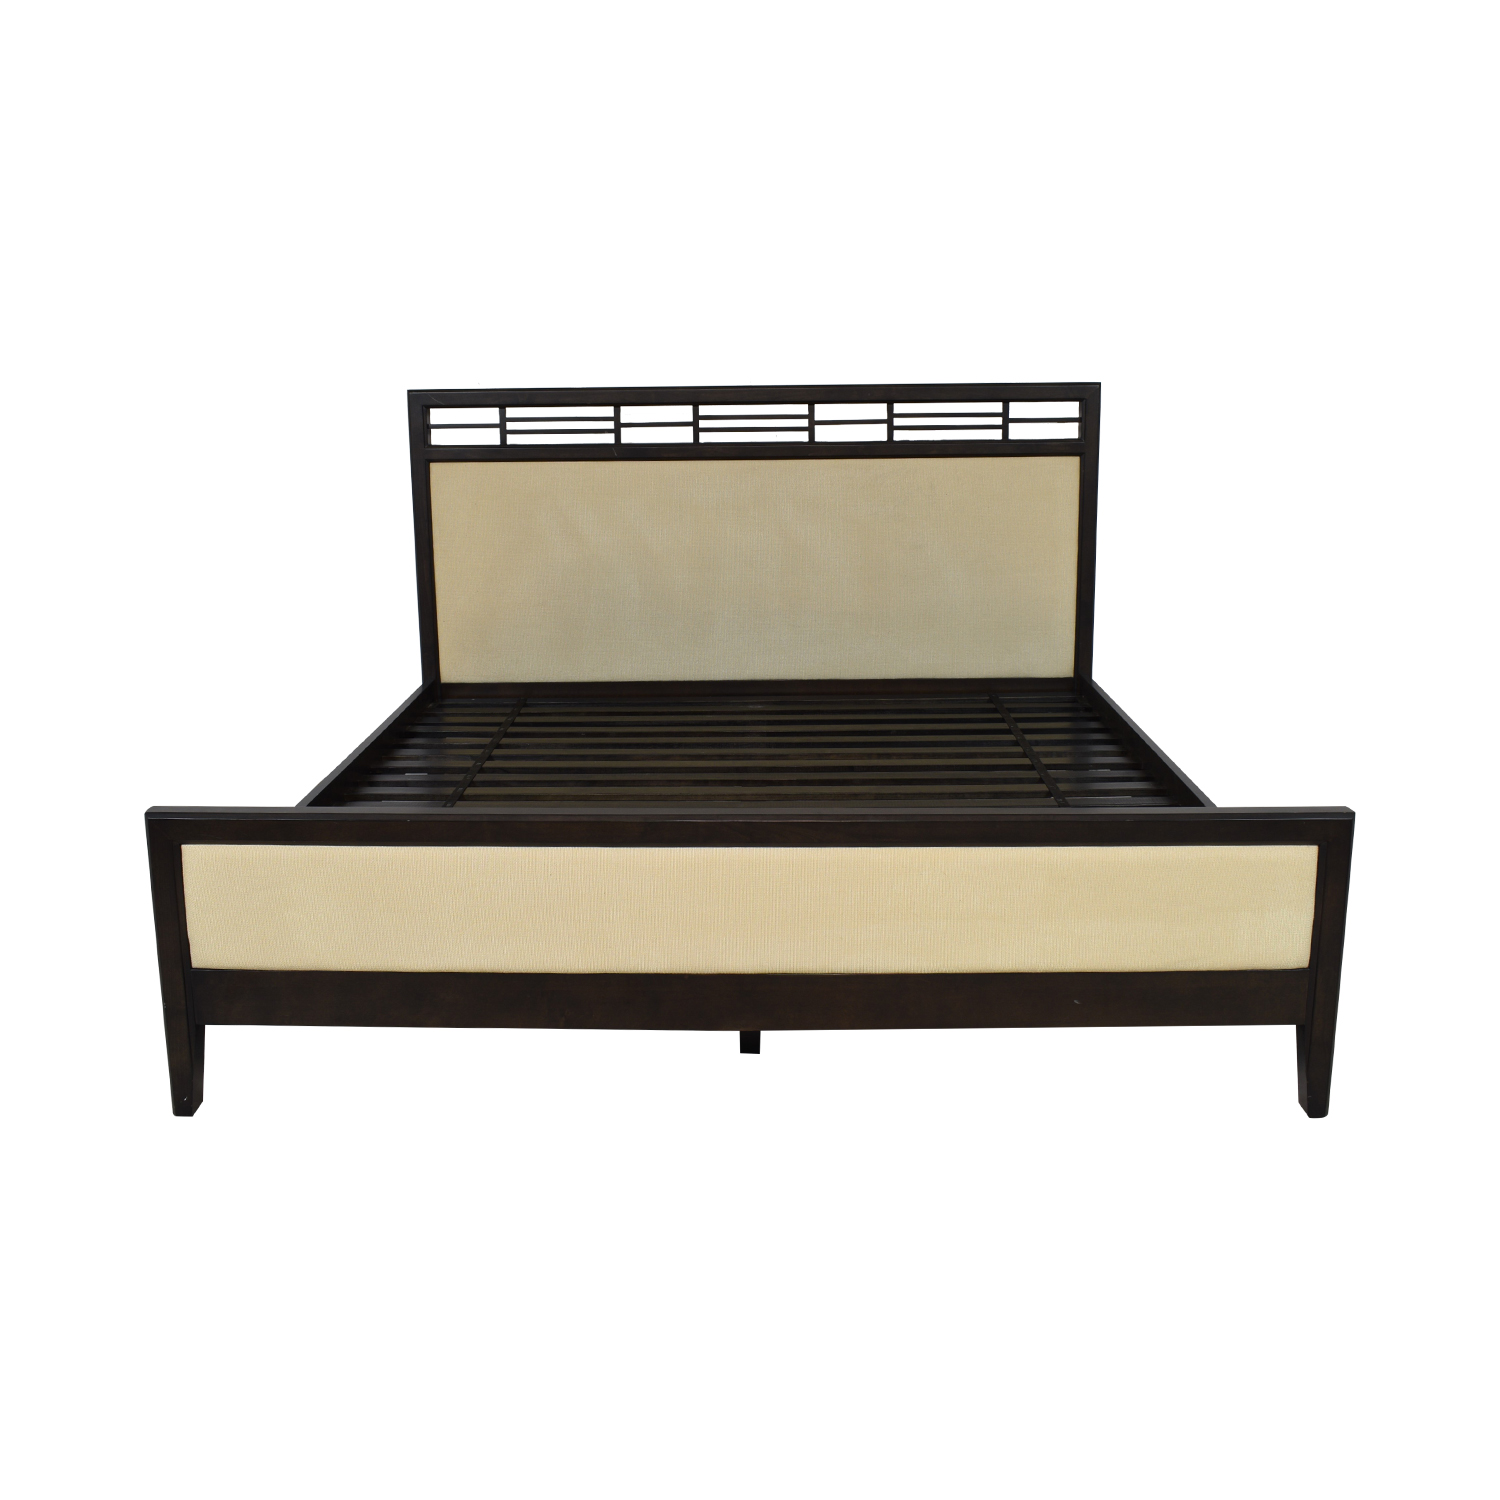 buy Crate & Barrel King Bed Crate & Barrel